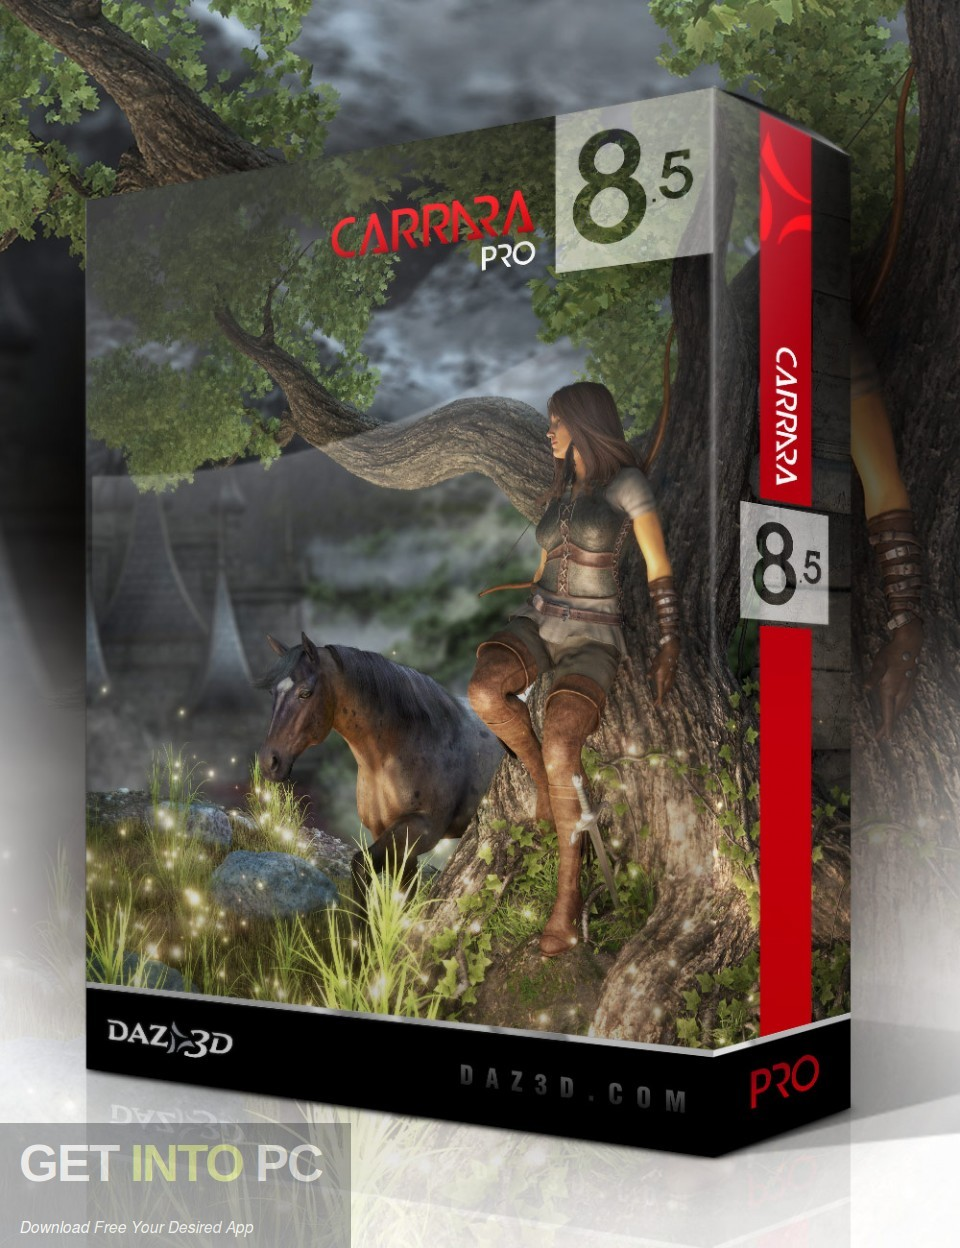 Carrara Pro DAZ 3D Bundle Free Download